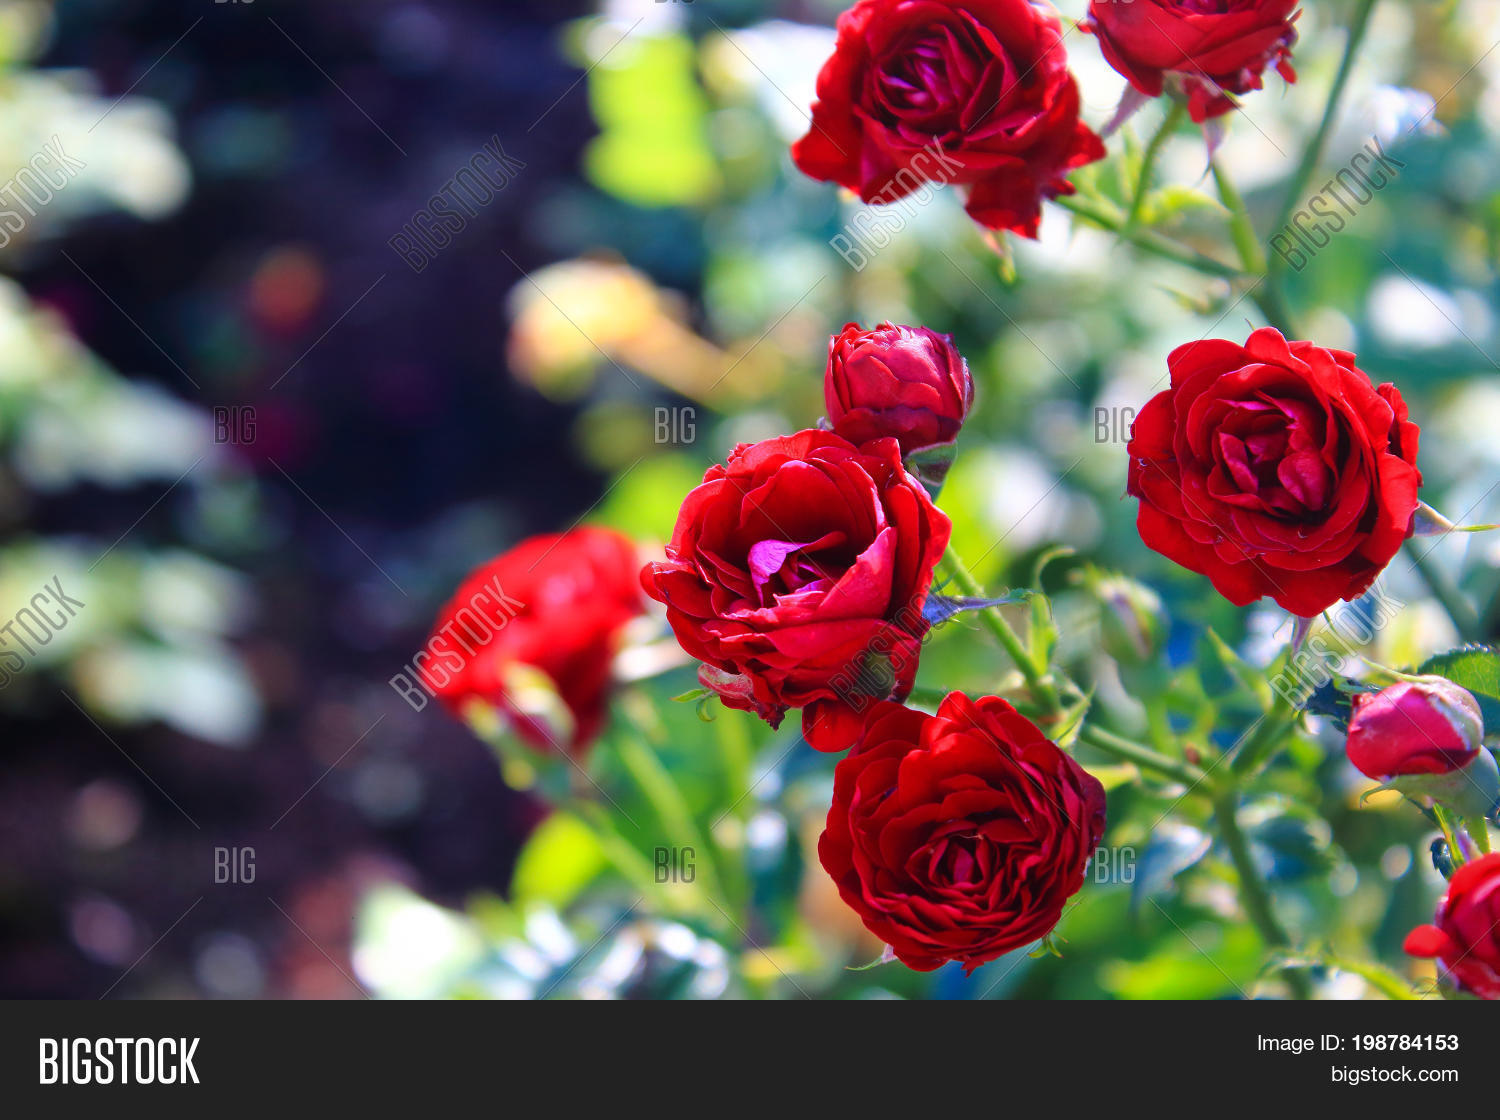 Small Red Roses Garden Image Photo Free Trial Bigstock